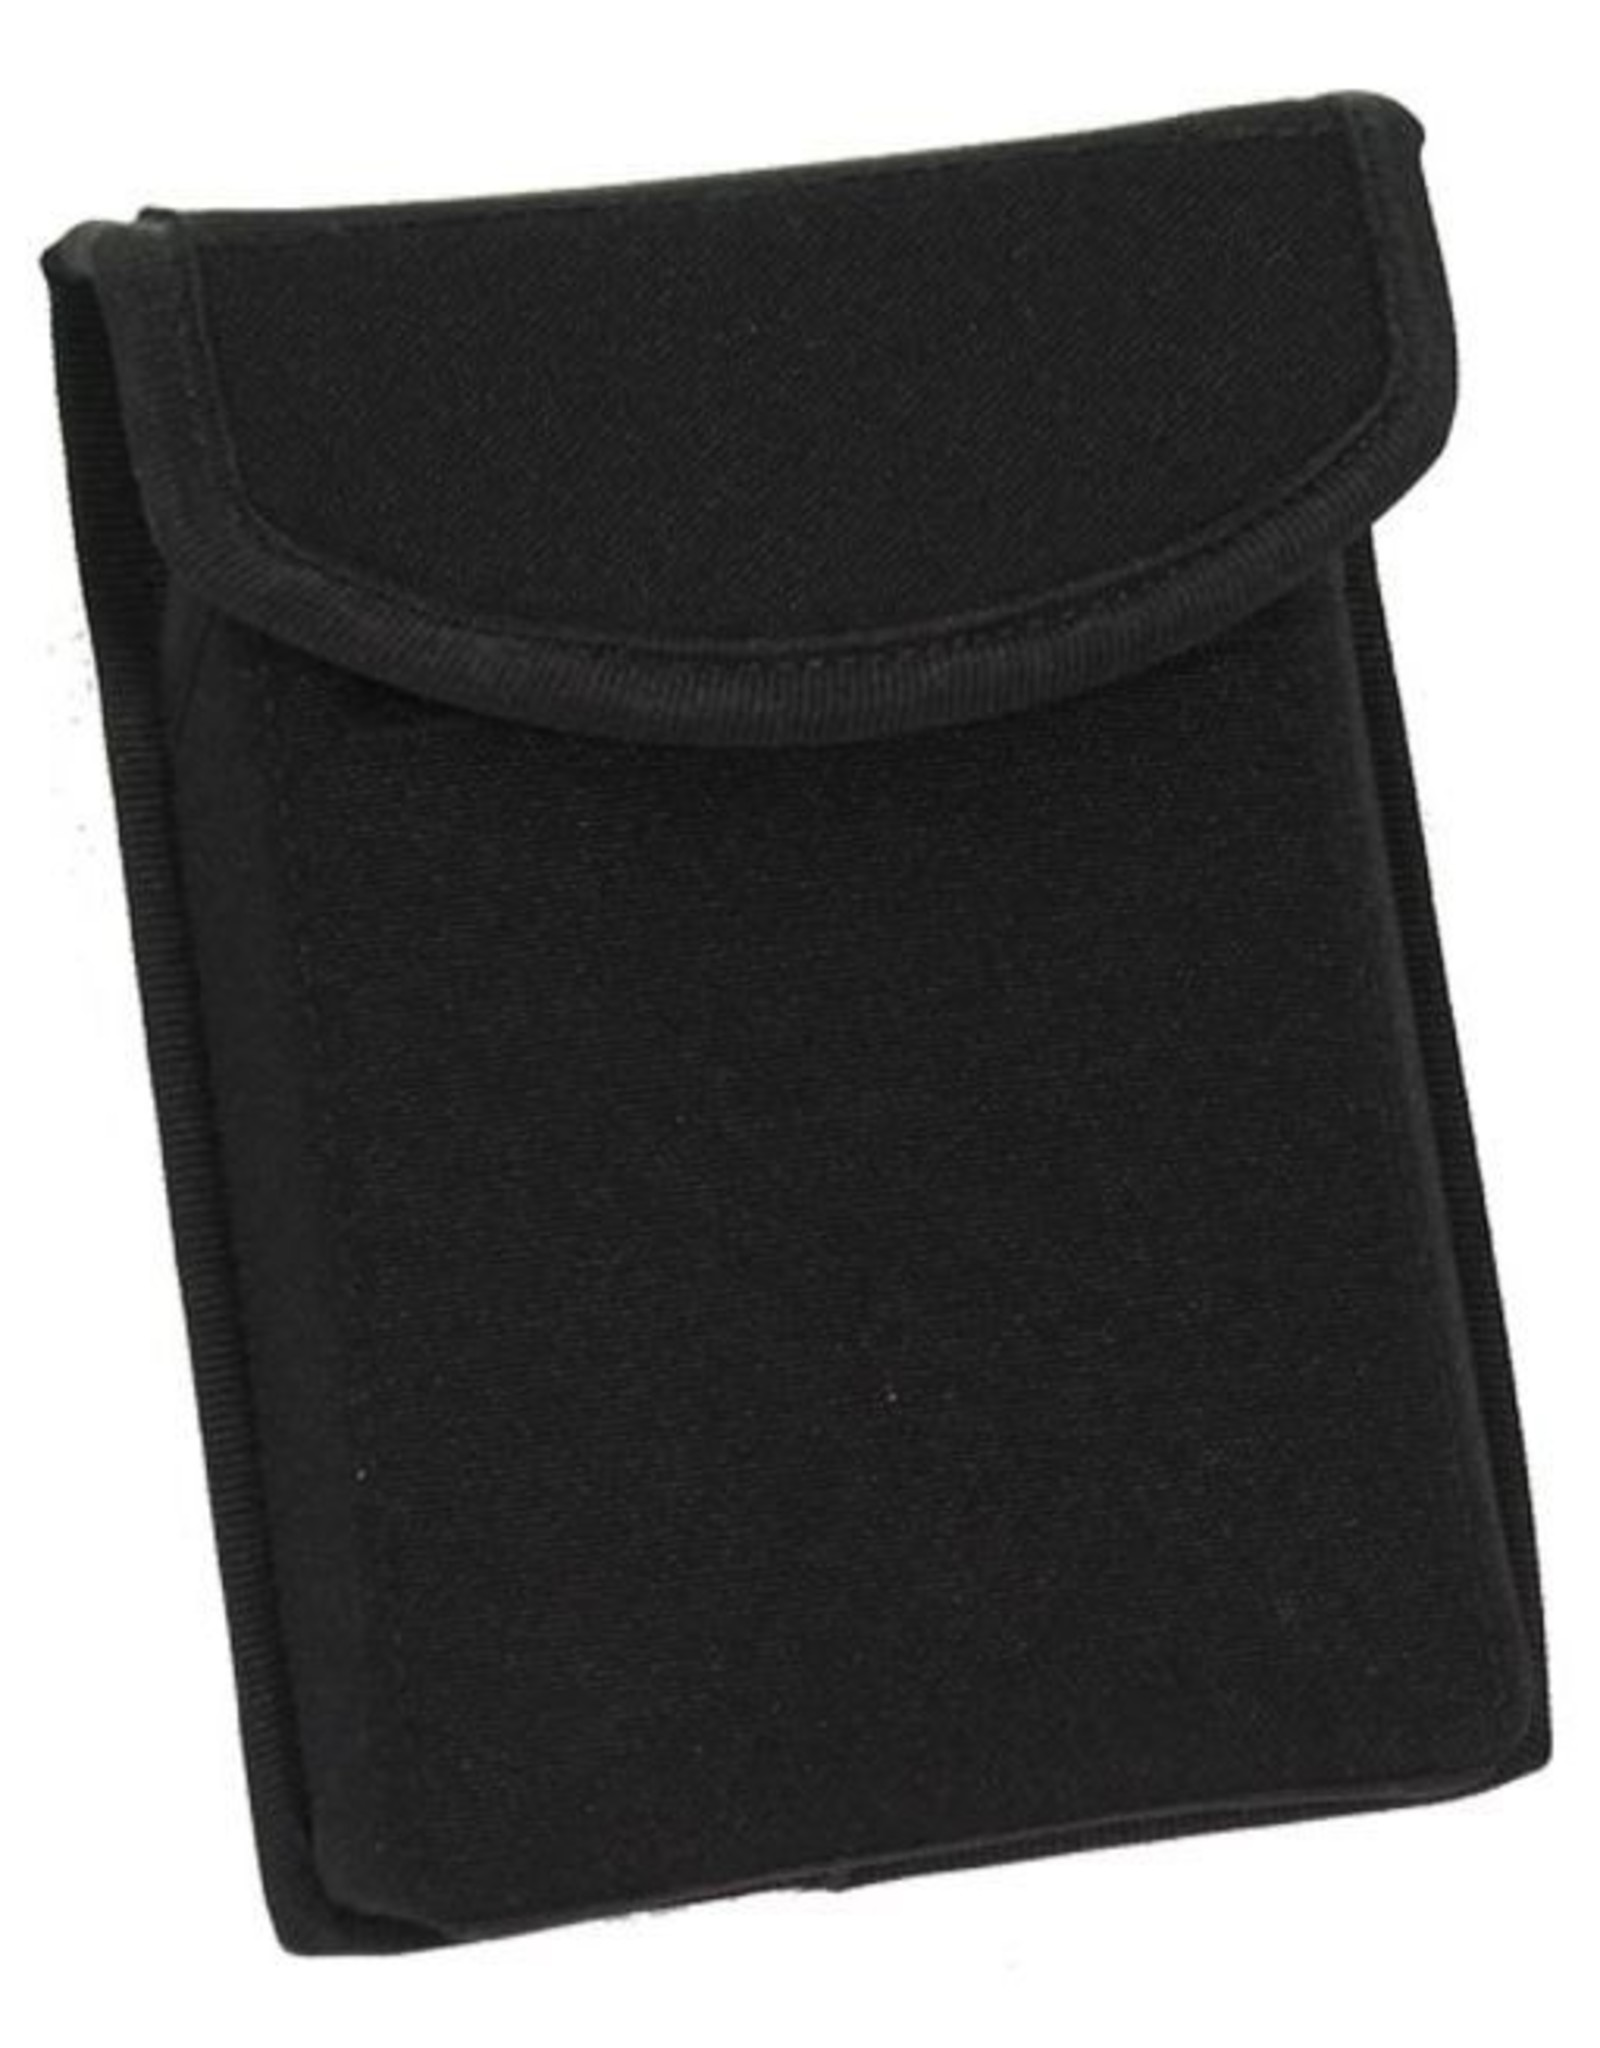 "HI-TEC INTERVENTION Note Pad Carrying Case For 4""""x5""""pad With Belt Loop On Back - HT571"